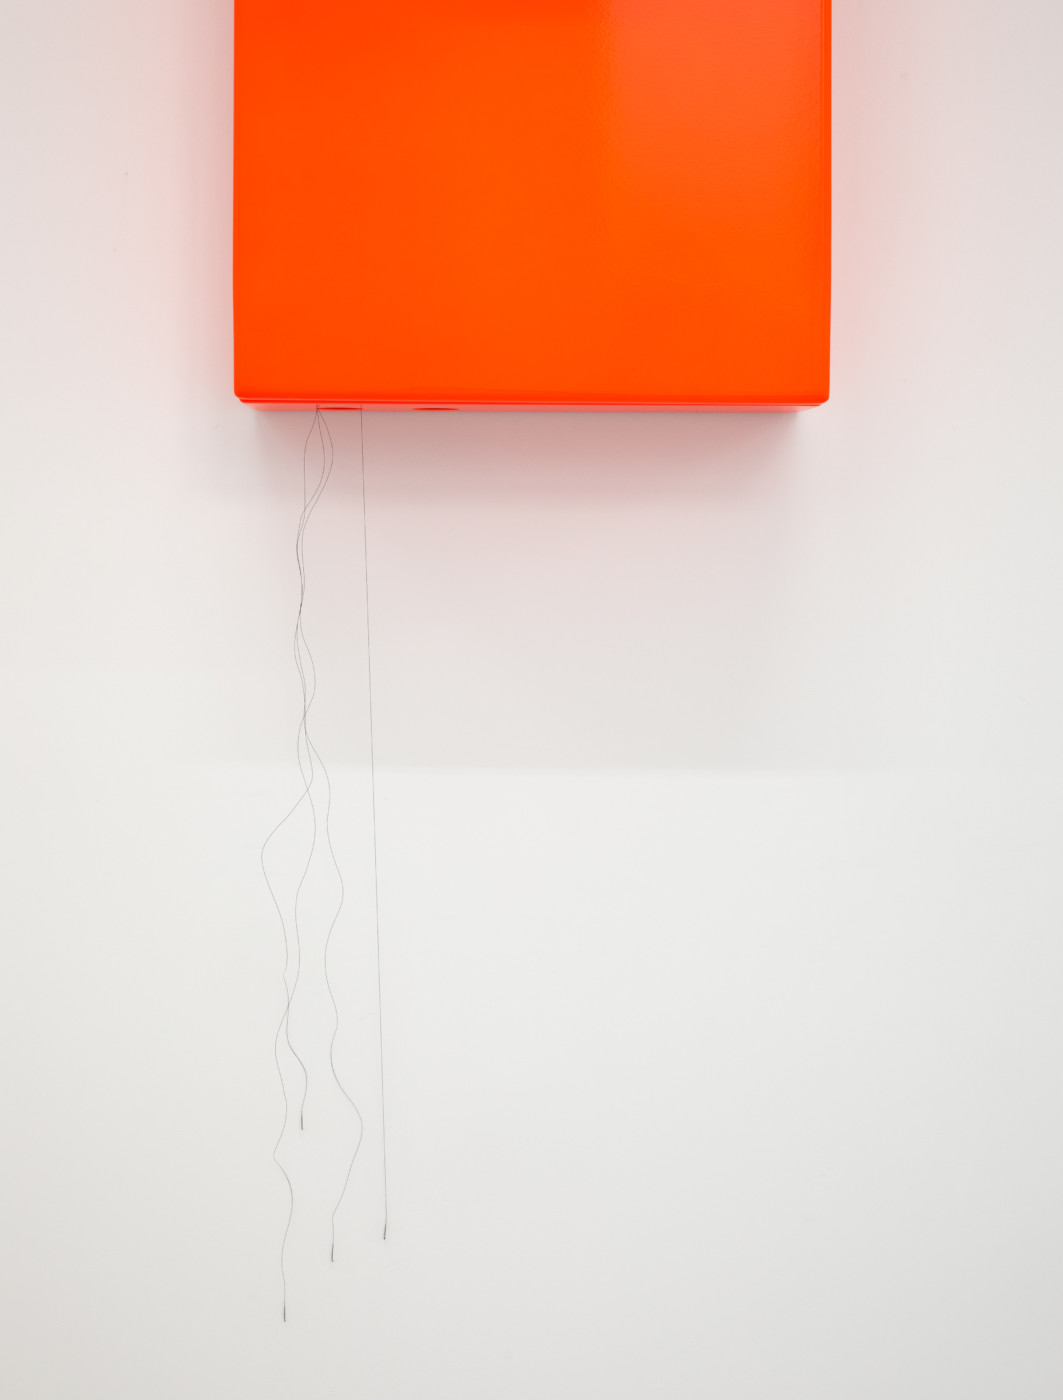 SUSCEPTIBLES  The Odds  (detail), 2018 Acrylic and PVC powermeter case, LED display, computer, motors, batteries, nylon sutures, aluminum and powder-coated steel 36 x 67 x 24 cm / 14.3 x 26.6 x 9.5 in  COOPER JACOBY